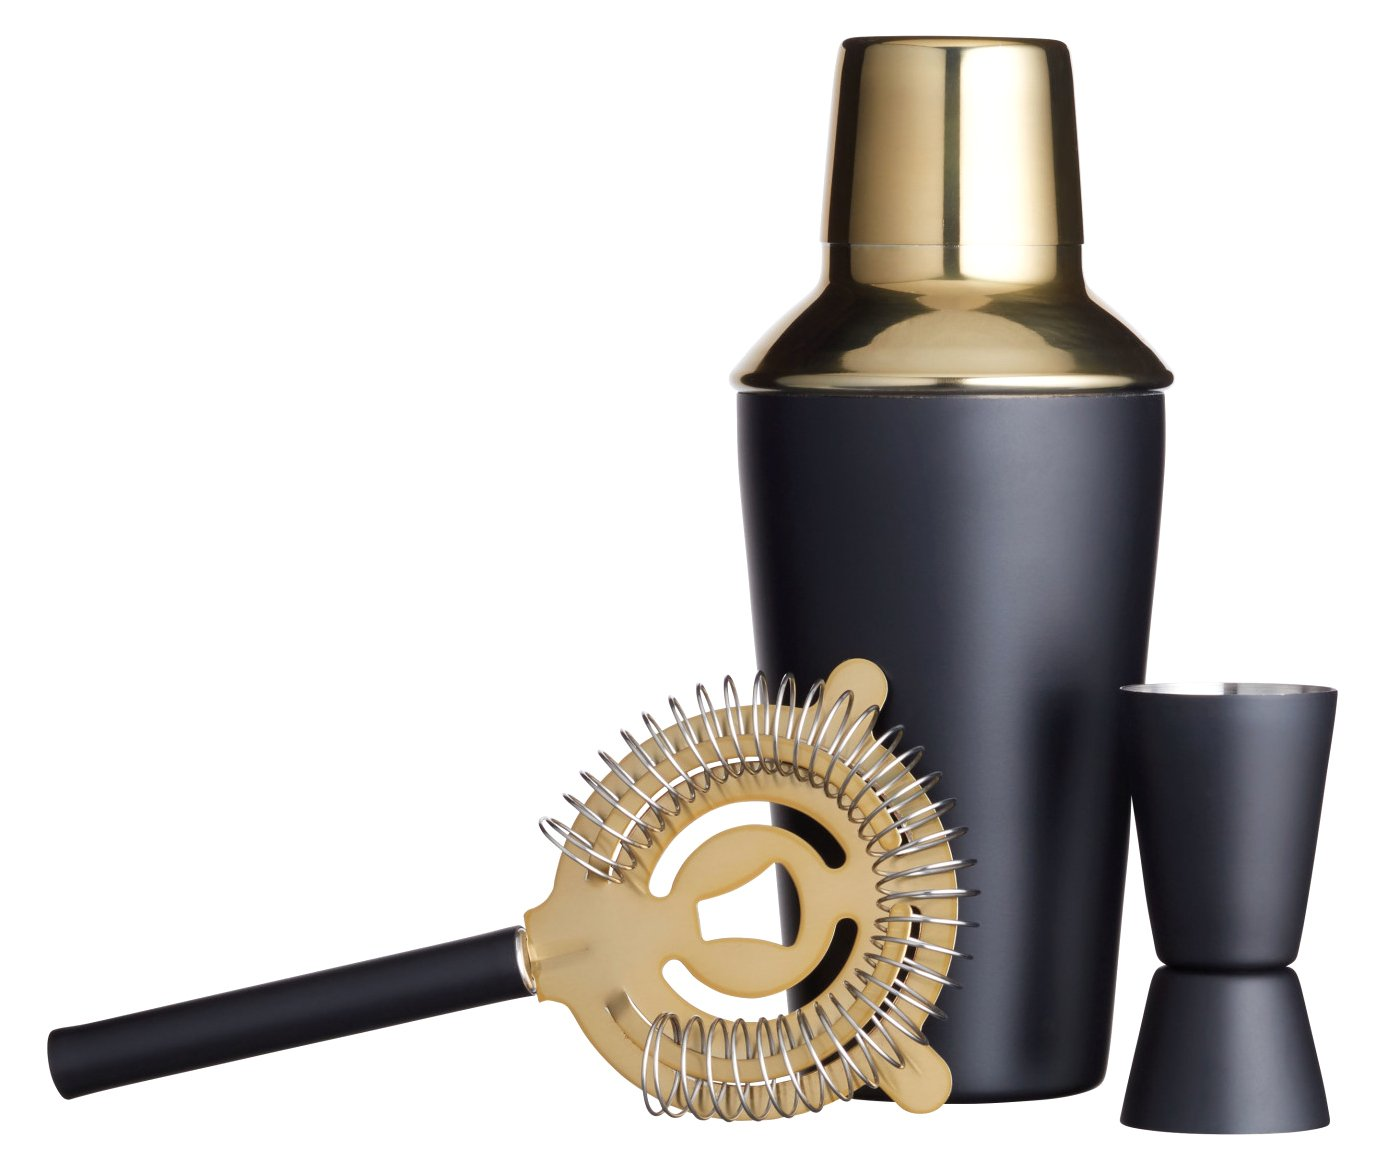 Barcraft Luxury Stainless Steel Cocktail Making Kit - Brass Finish (3-piece